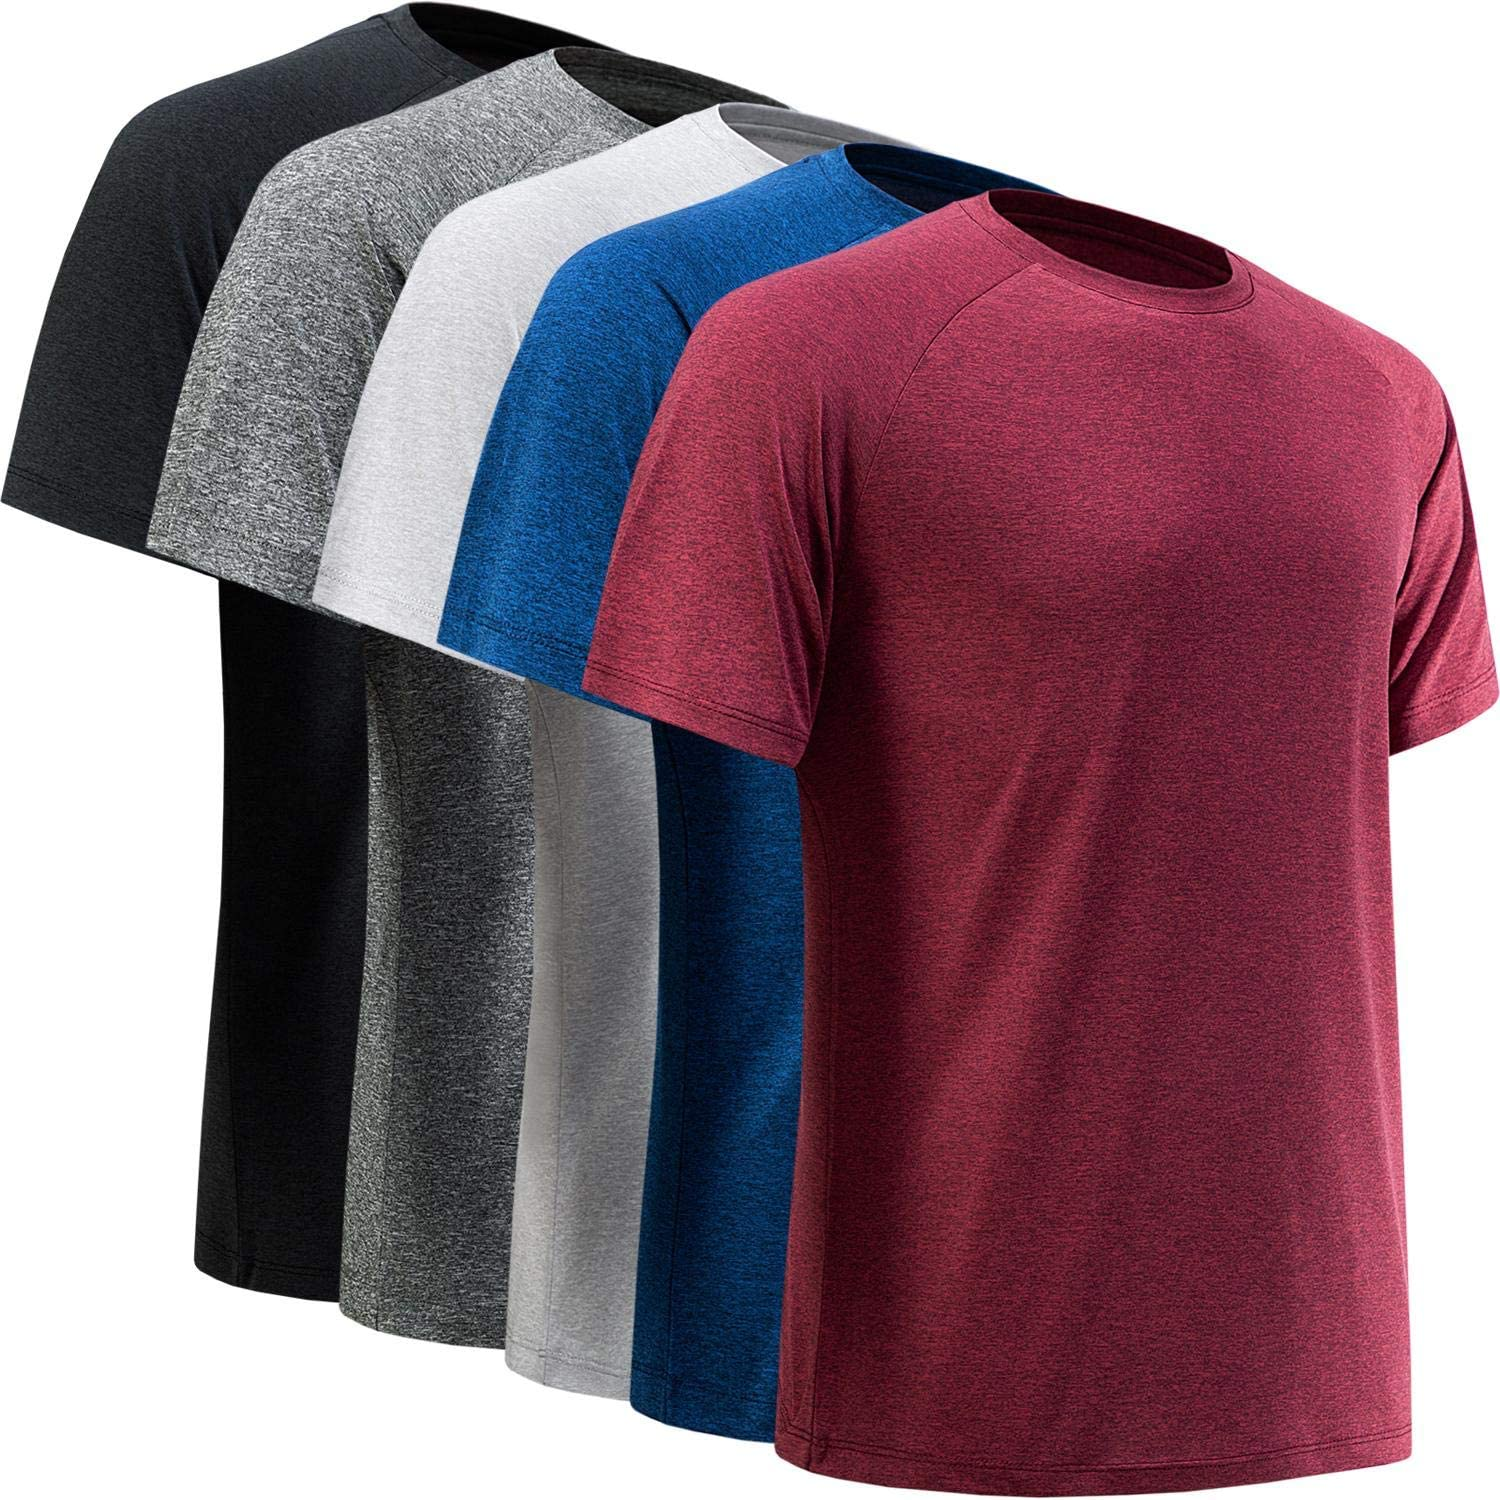 BALENNZ Workout Shirts for Men, Moisture Wicking Quick Dry Active Athletic Men's Gym Performance T Shirts: Clothing